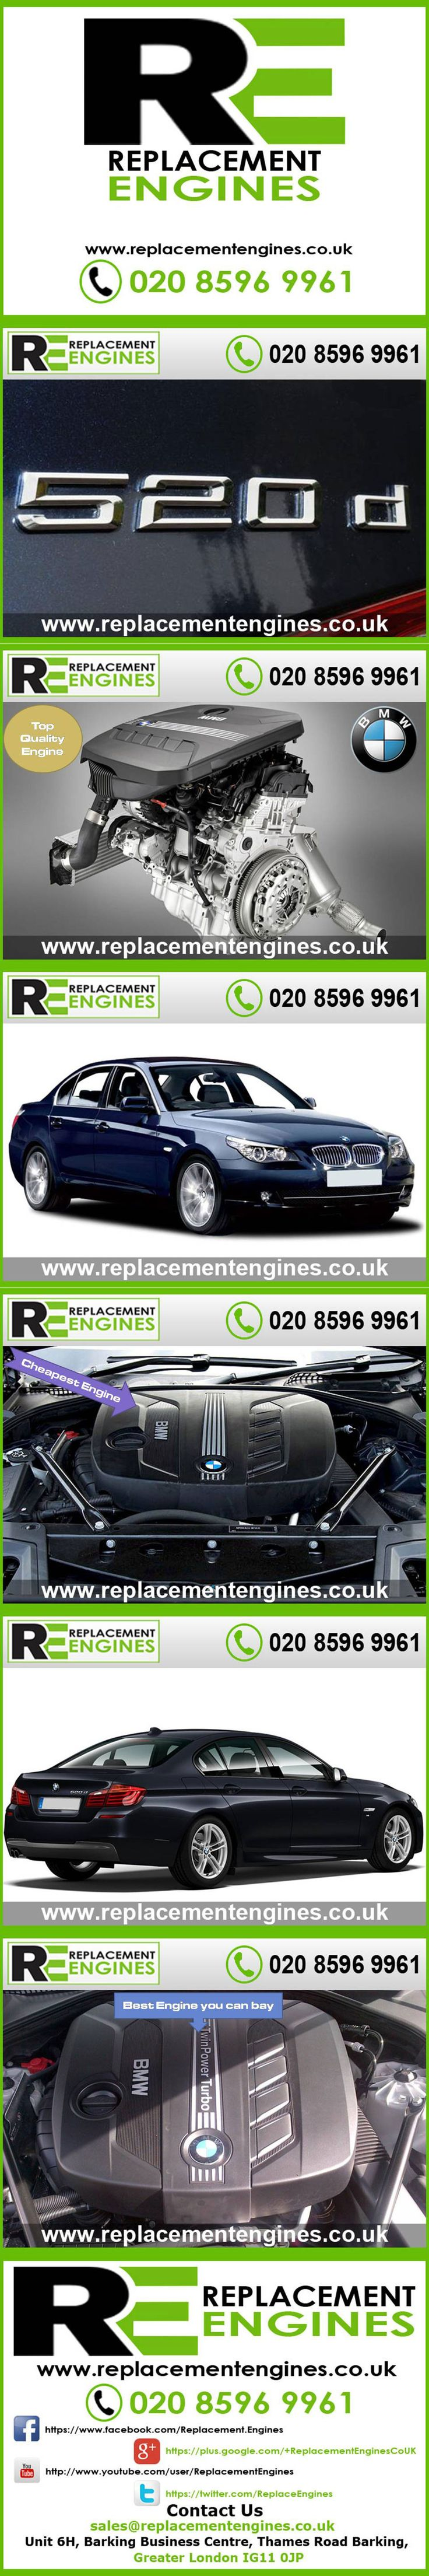 BMW 520d Engines for sale at the cheapest prices, we have low mileage used & reconditioned engines in stock now, ready to be delivered to anywhere in the UK or overseas, visit Replacement Engines website here.  http://www.replacementengines.co.uk/car-md.asp?part=all-bmw-520ddiesel-engine&mo_id=31172